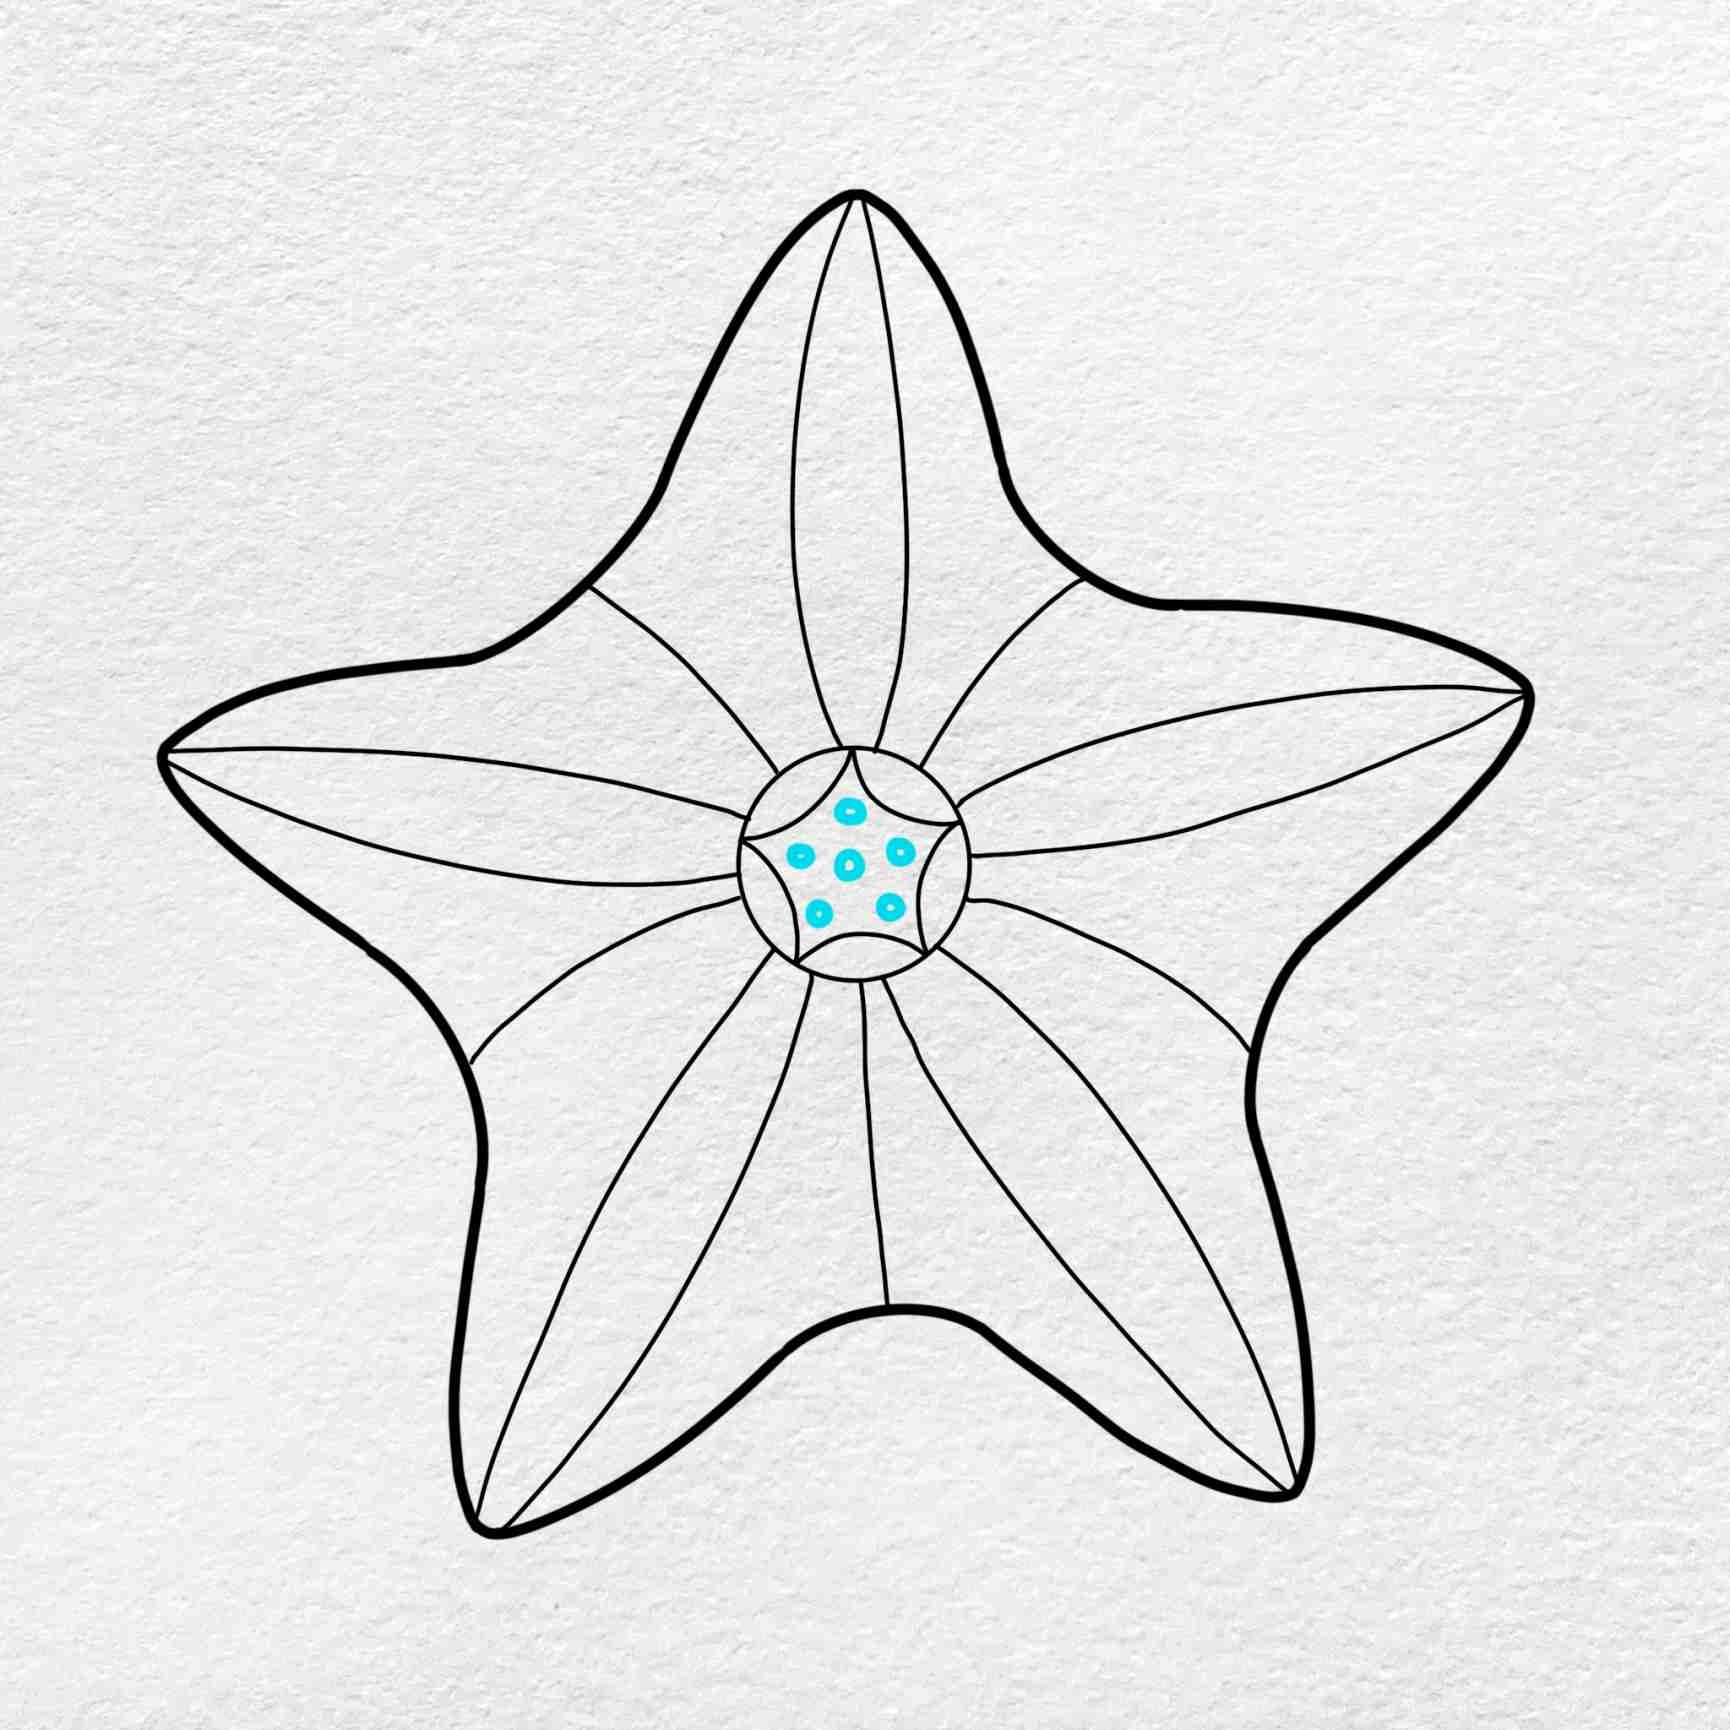 How To Draw A Starfish: Step 4